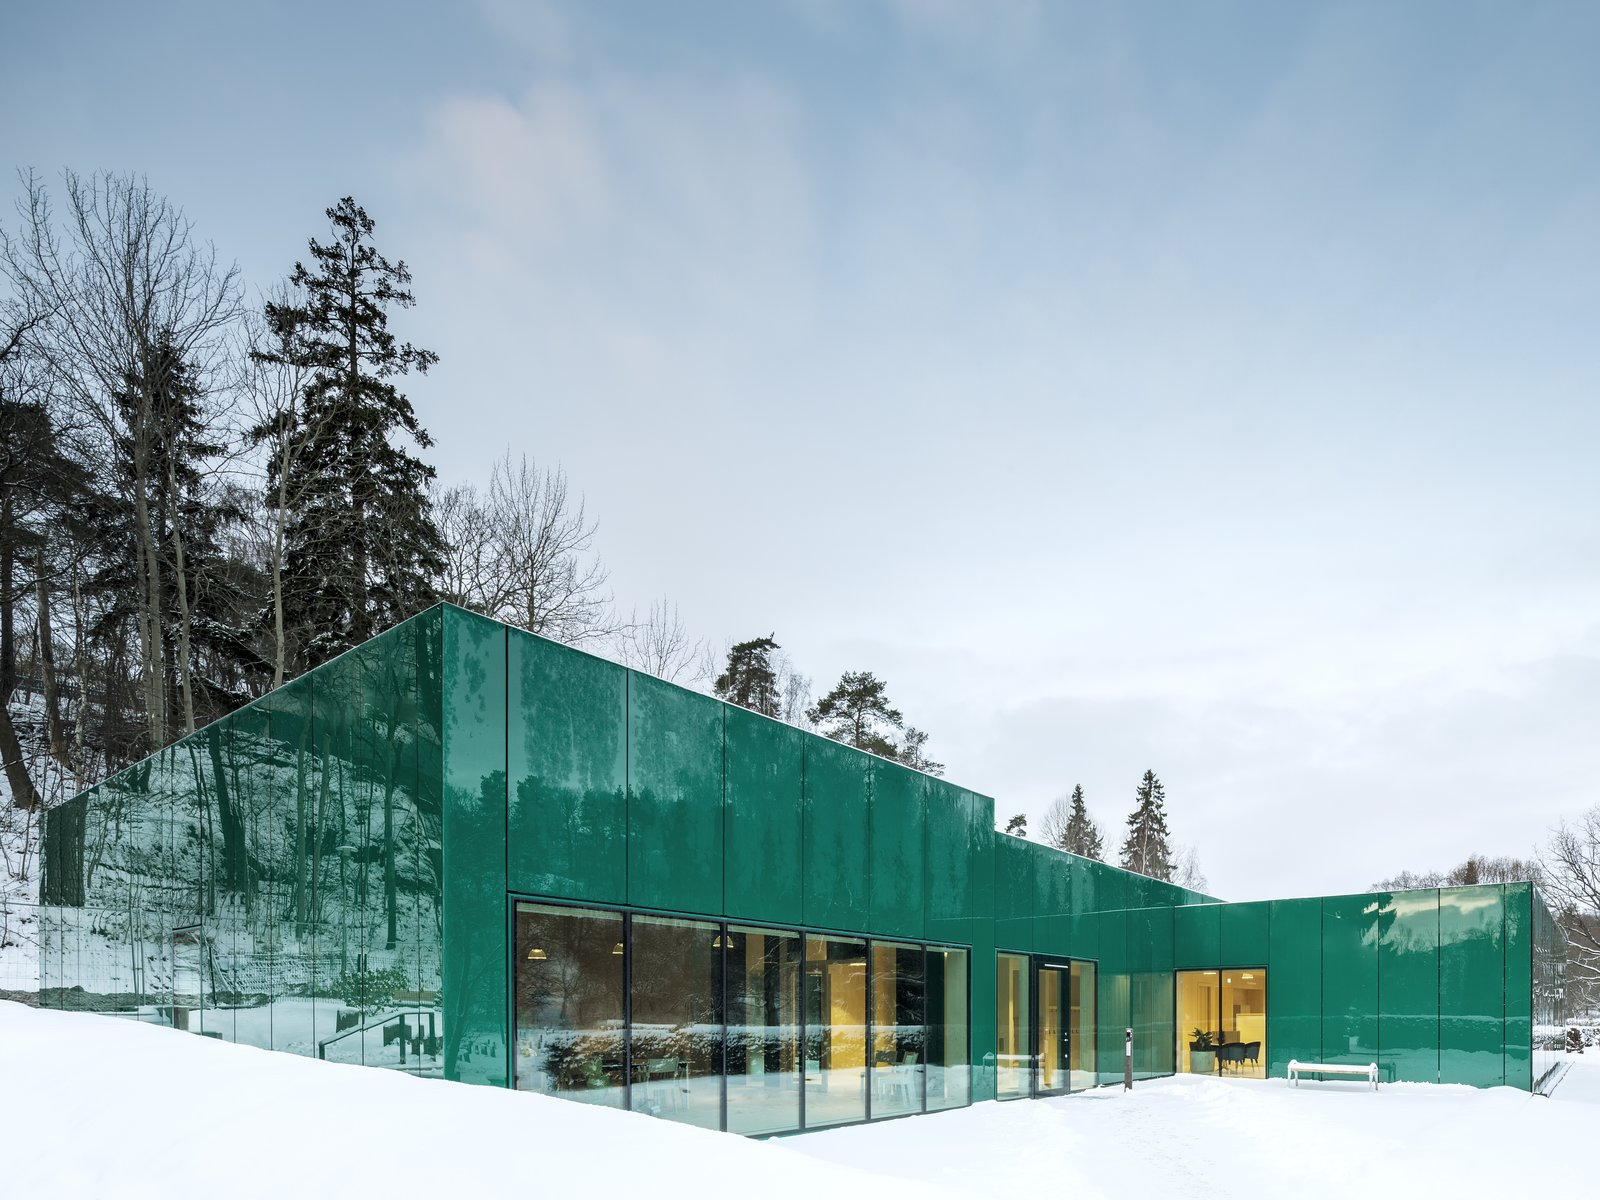 Exterior, Metal Siding Material, Metal Roof Material, Flat RoofLine, and Glass Siding Material  Photo 1 of 7 in Architect Gert Wingårdh Builds a Dazzling Emerald Office in a Swedish Cemetery